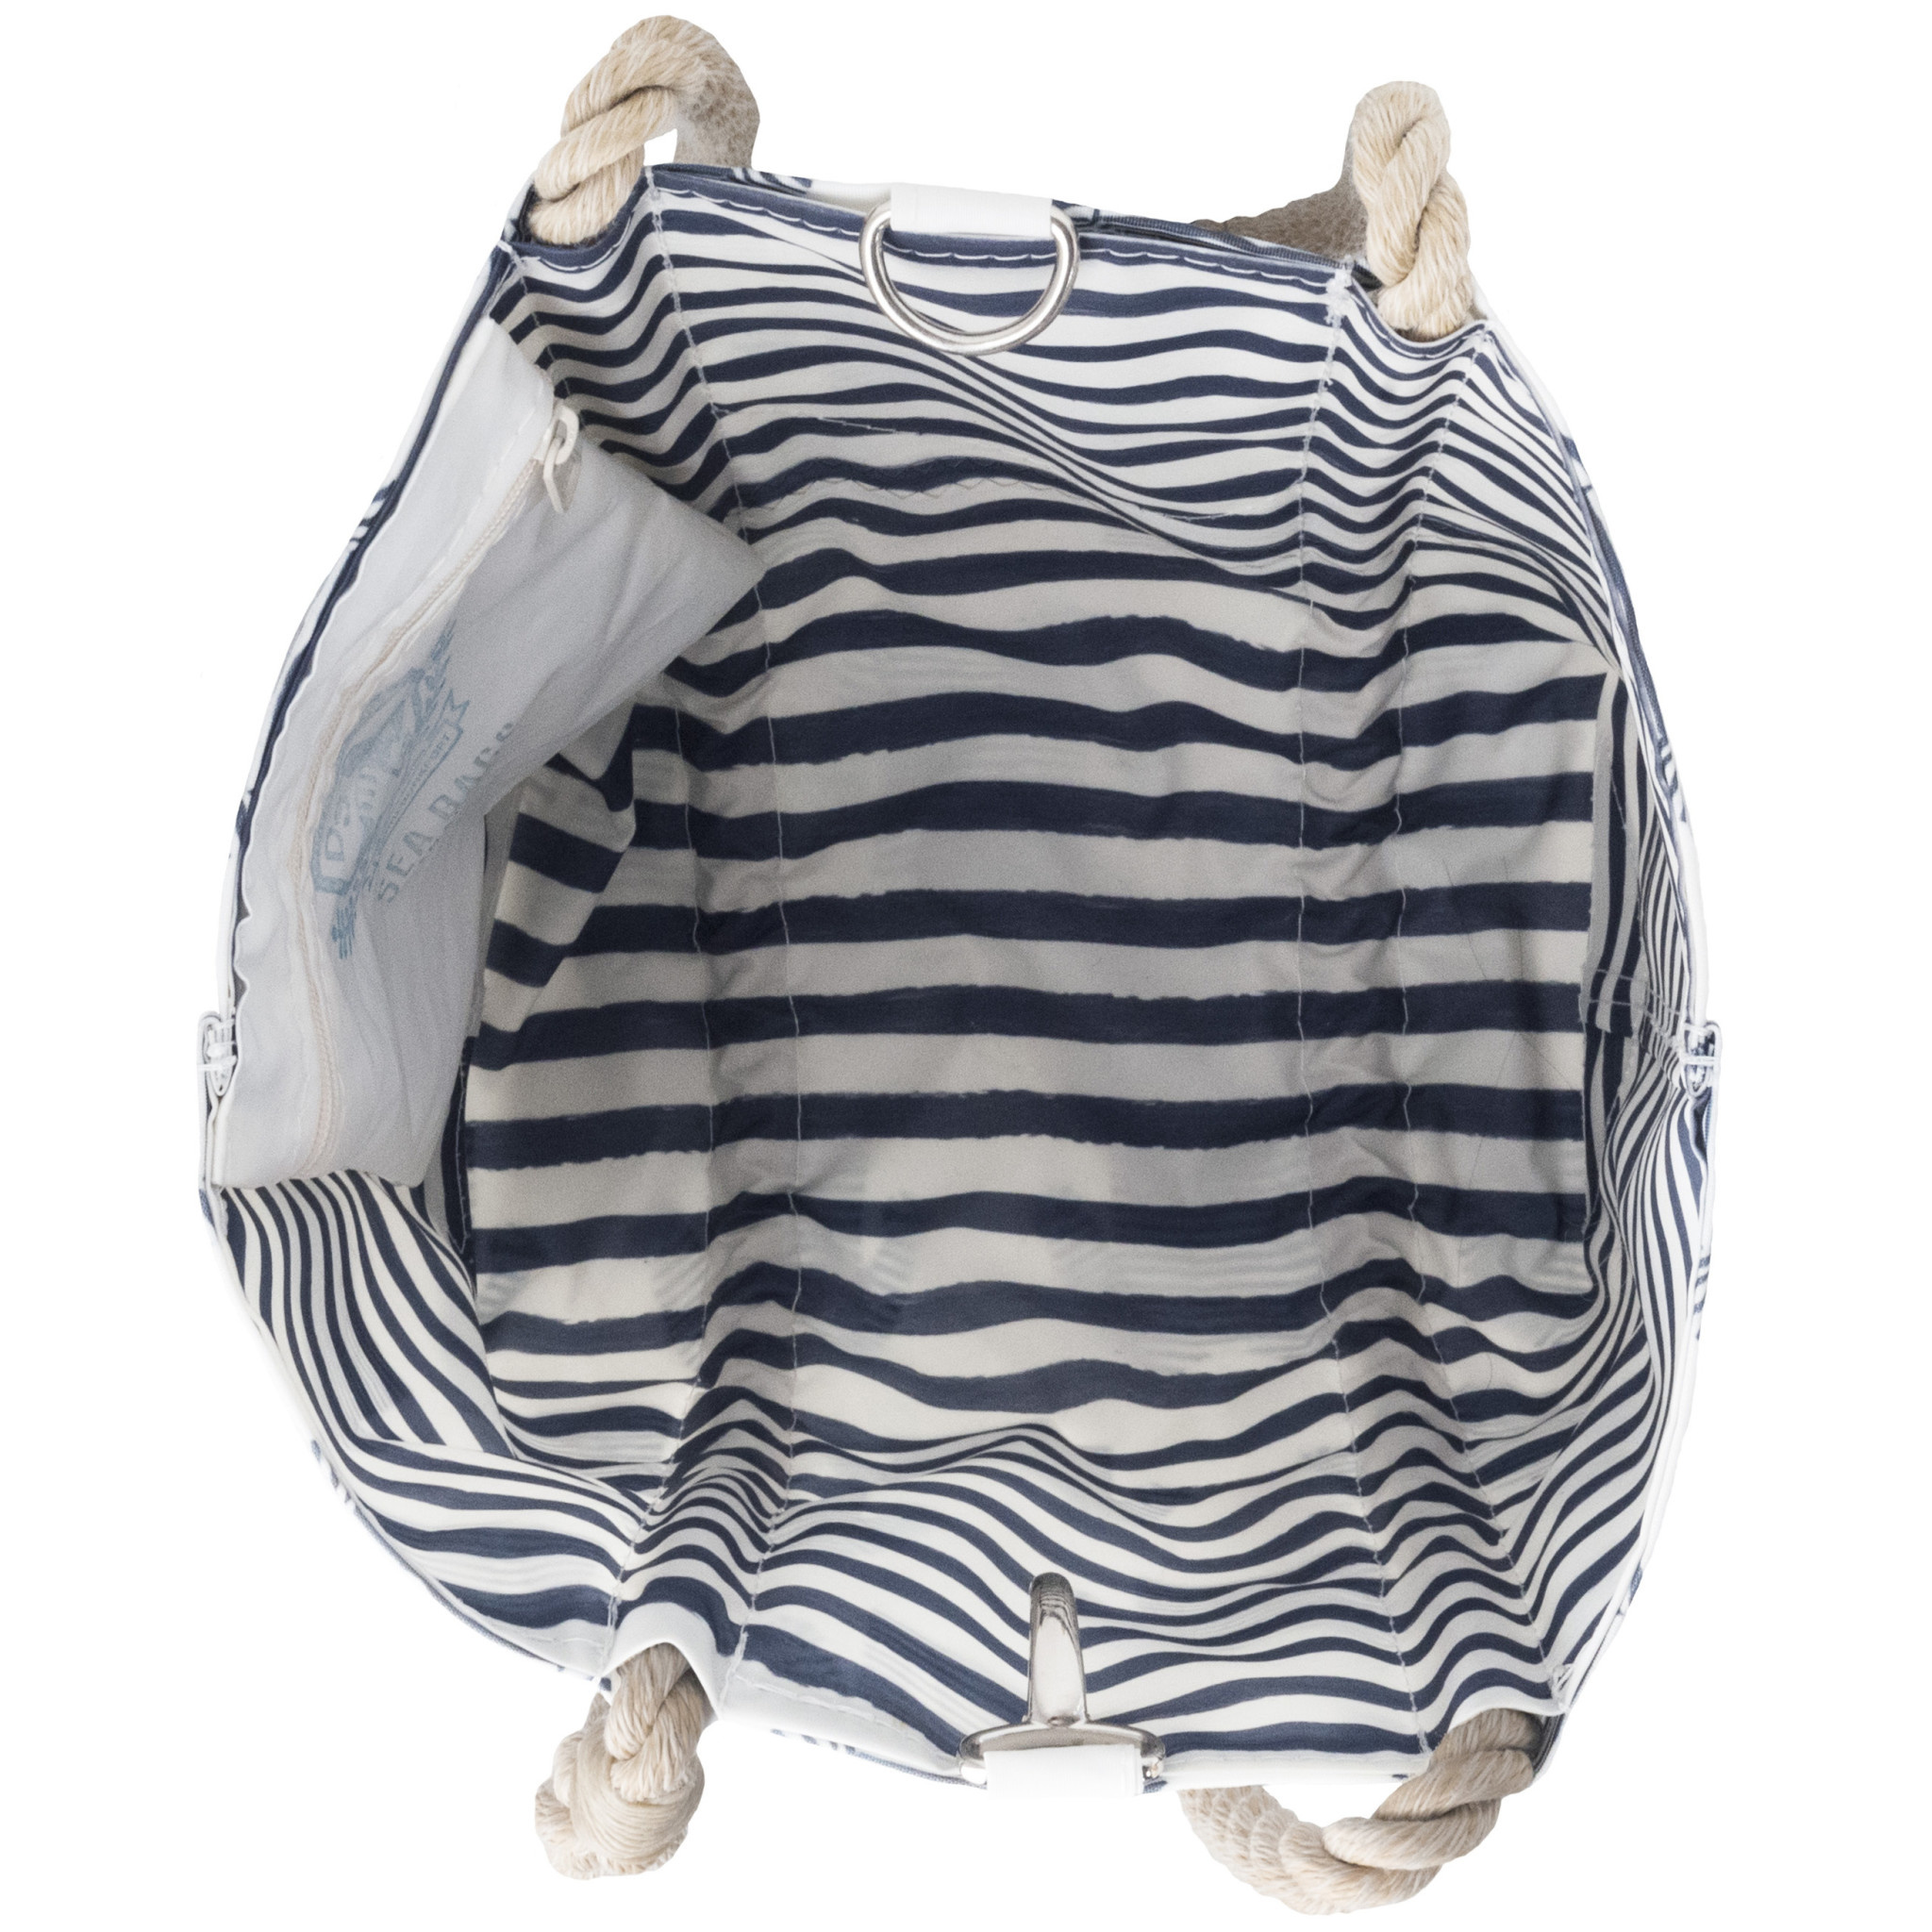 Sea Bags Sara Fitz Striped Shirt Pattern Handbag Tote - Hemp Handle - Small with Clasp